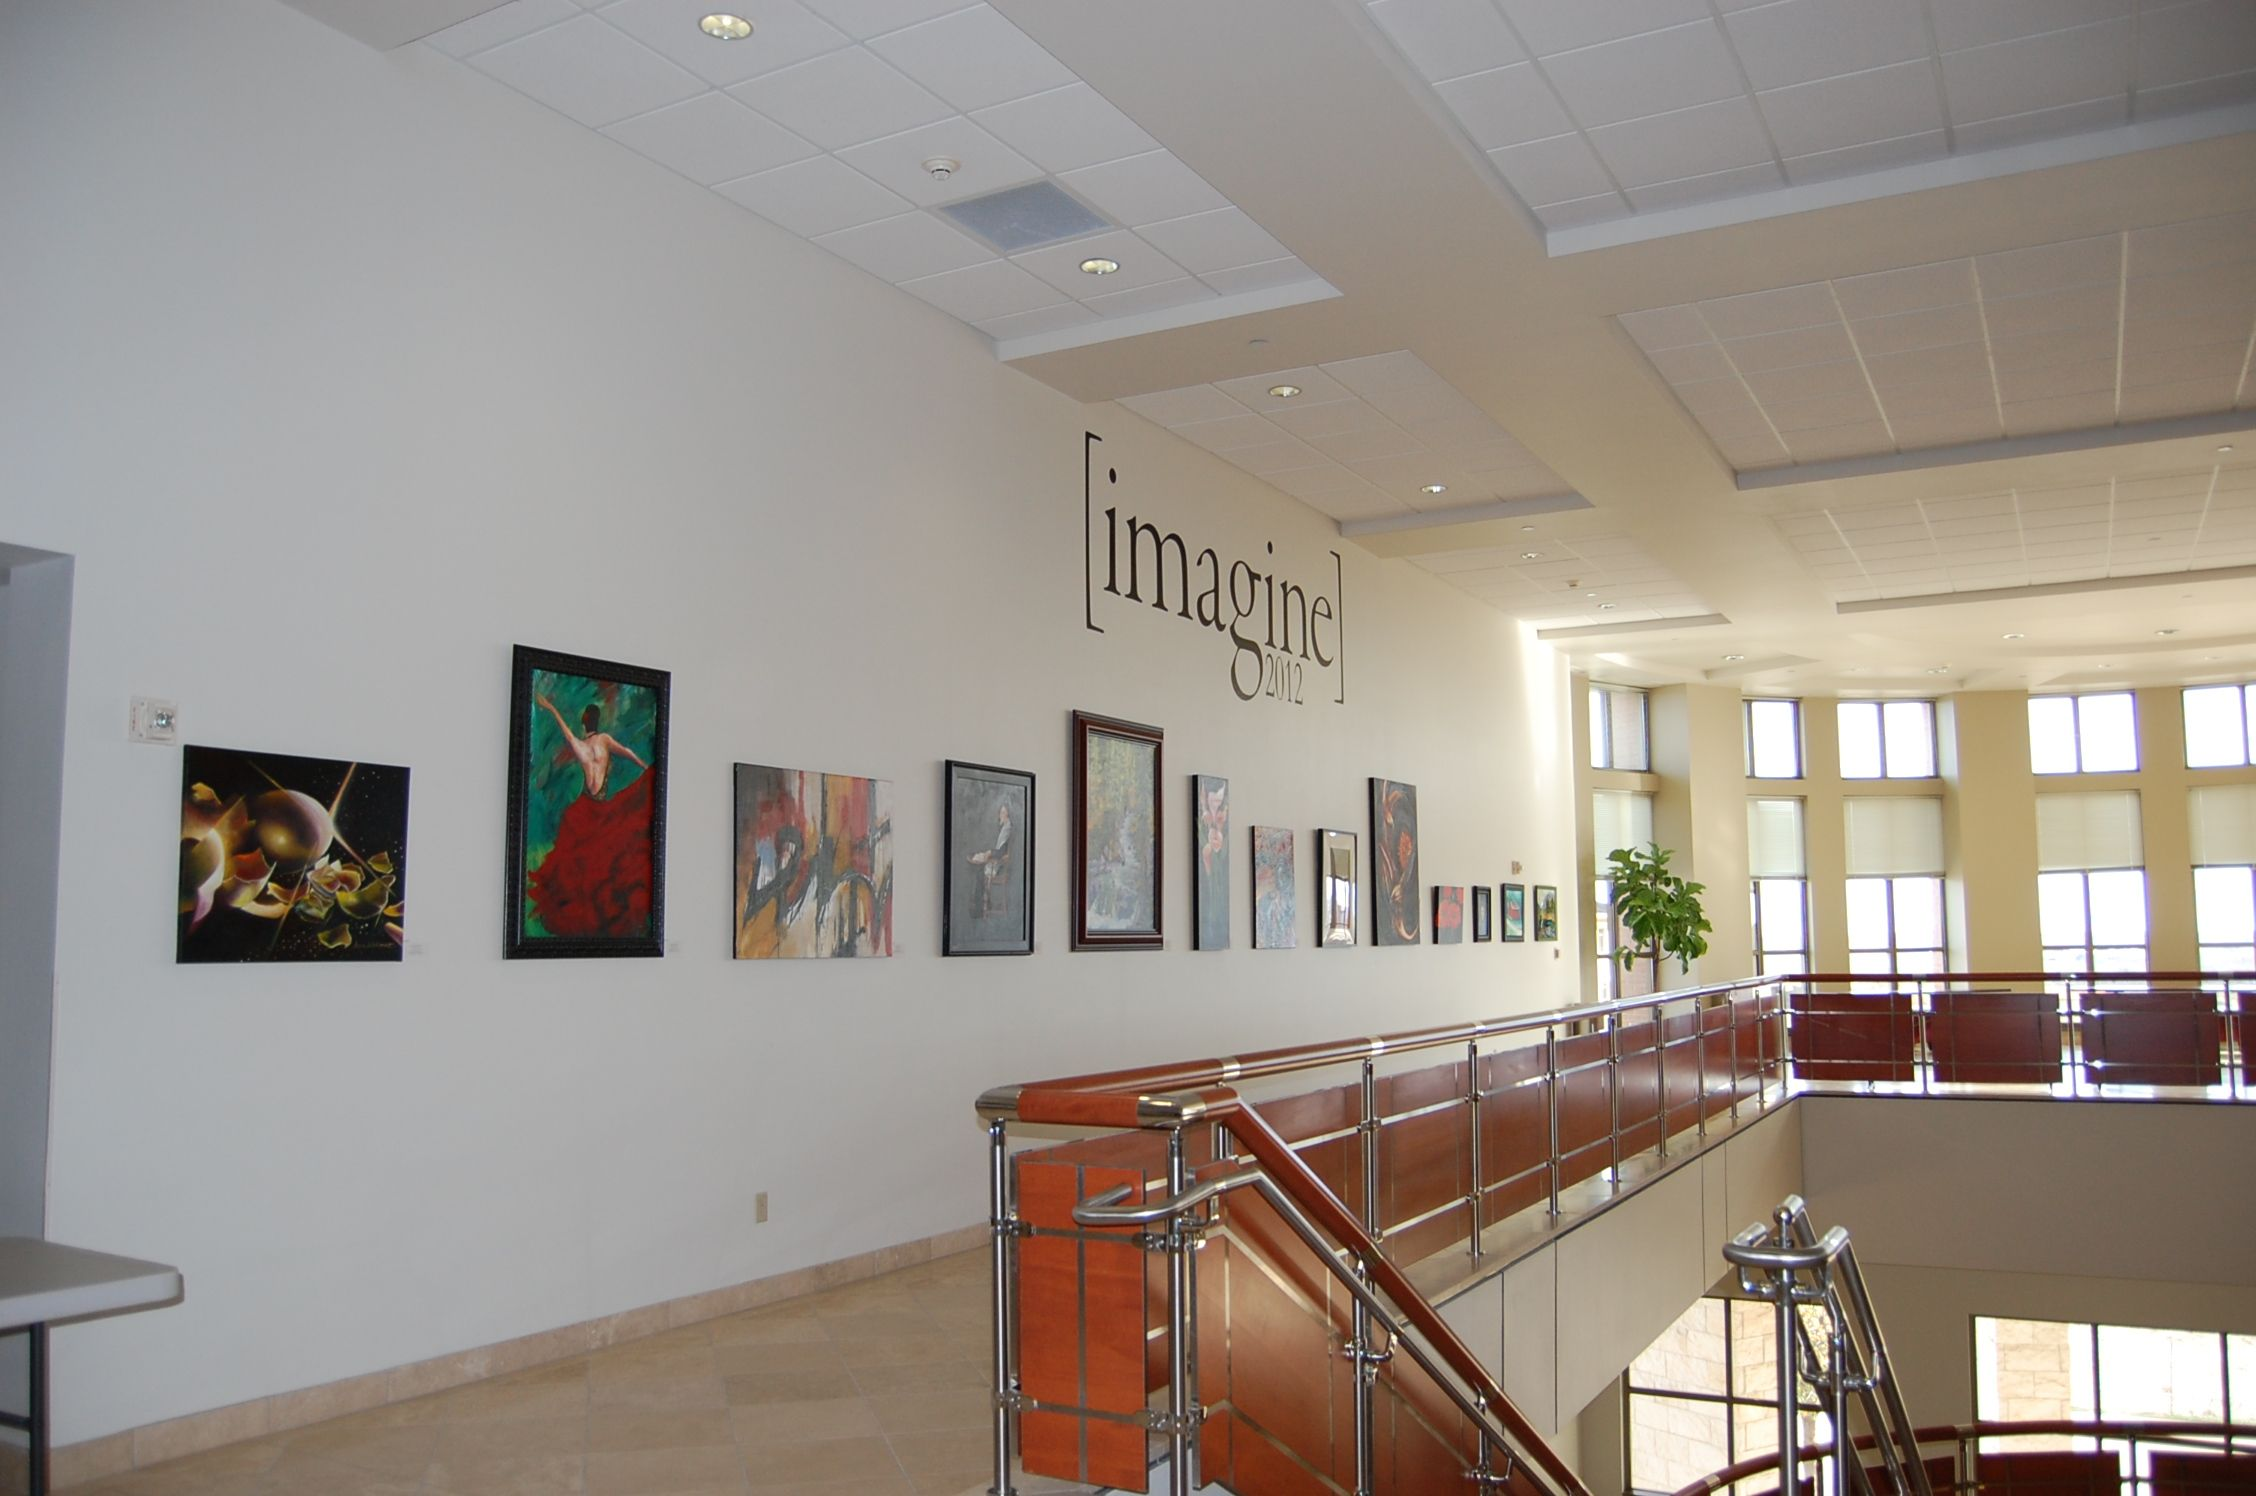 Imagine 2012 in the avery building at the round rock